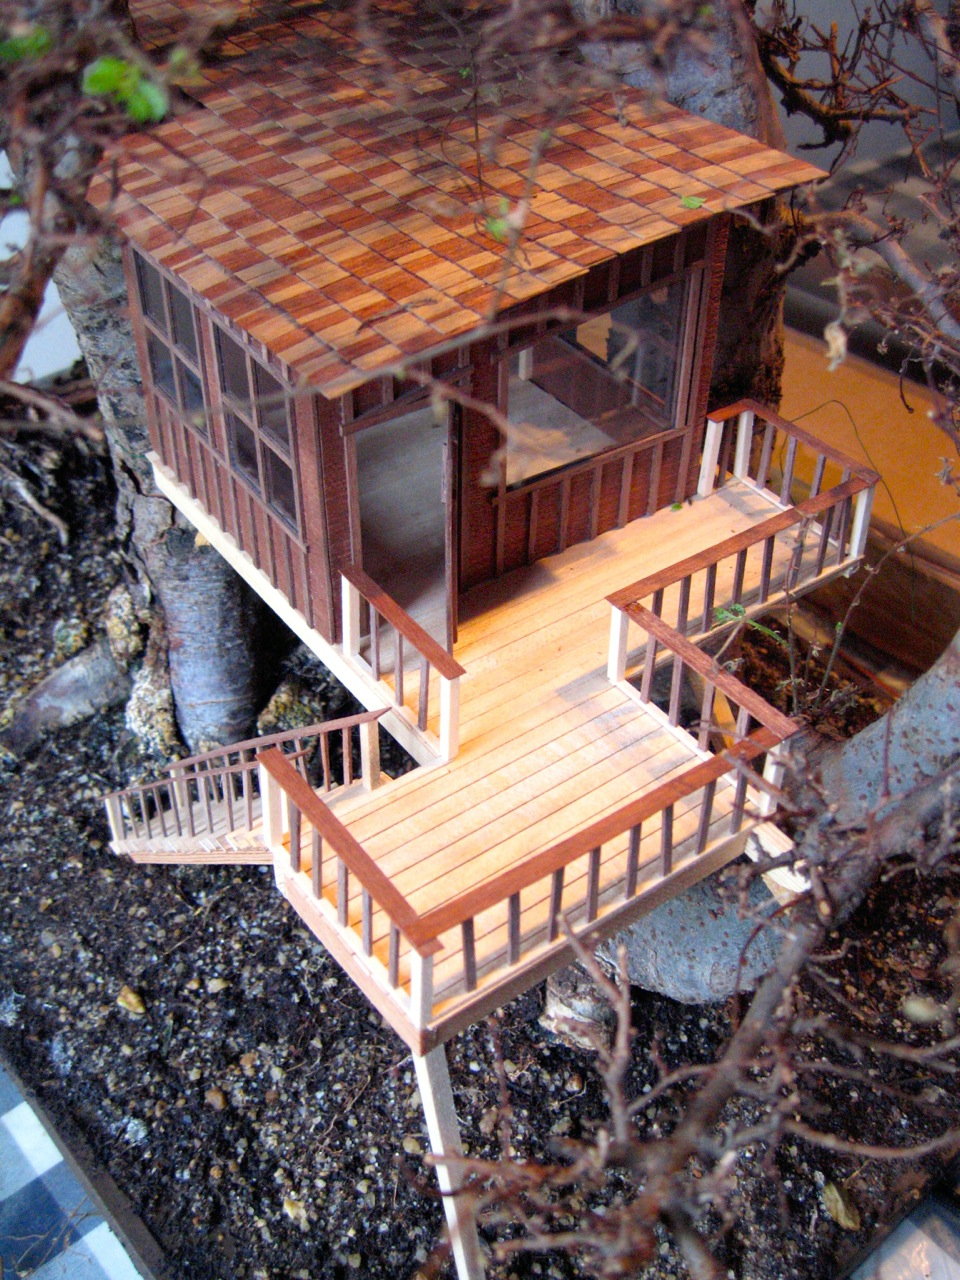 This treehouse doesn't require much space